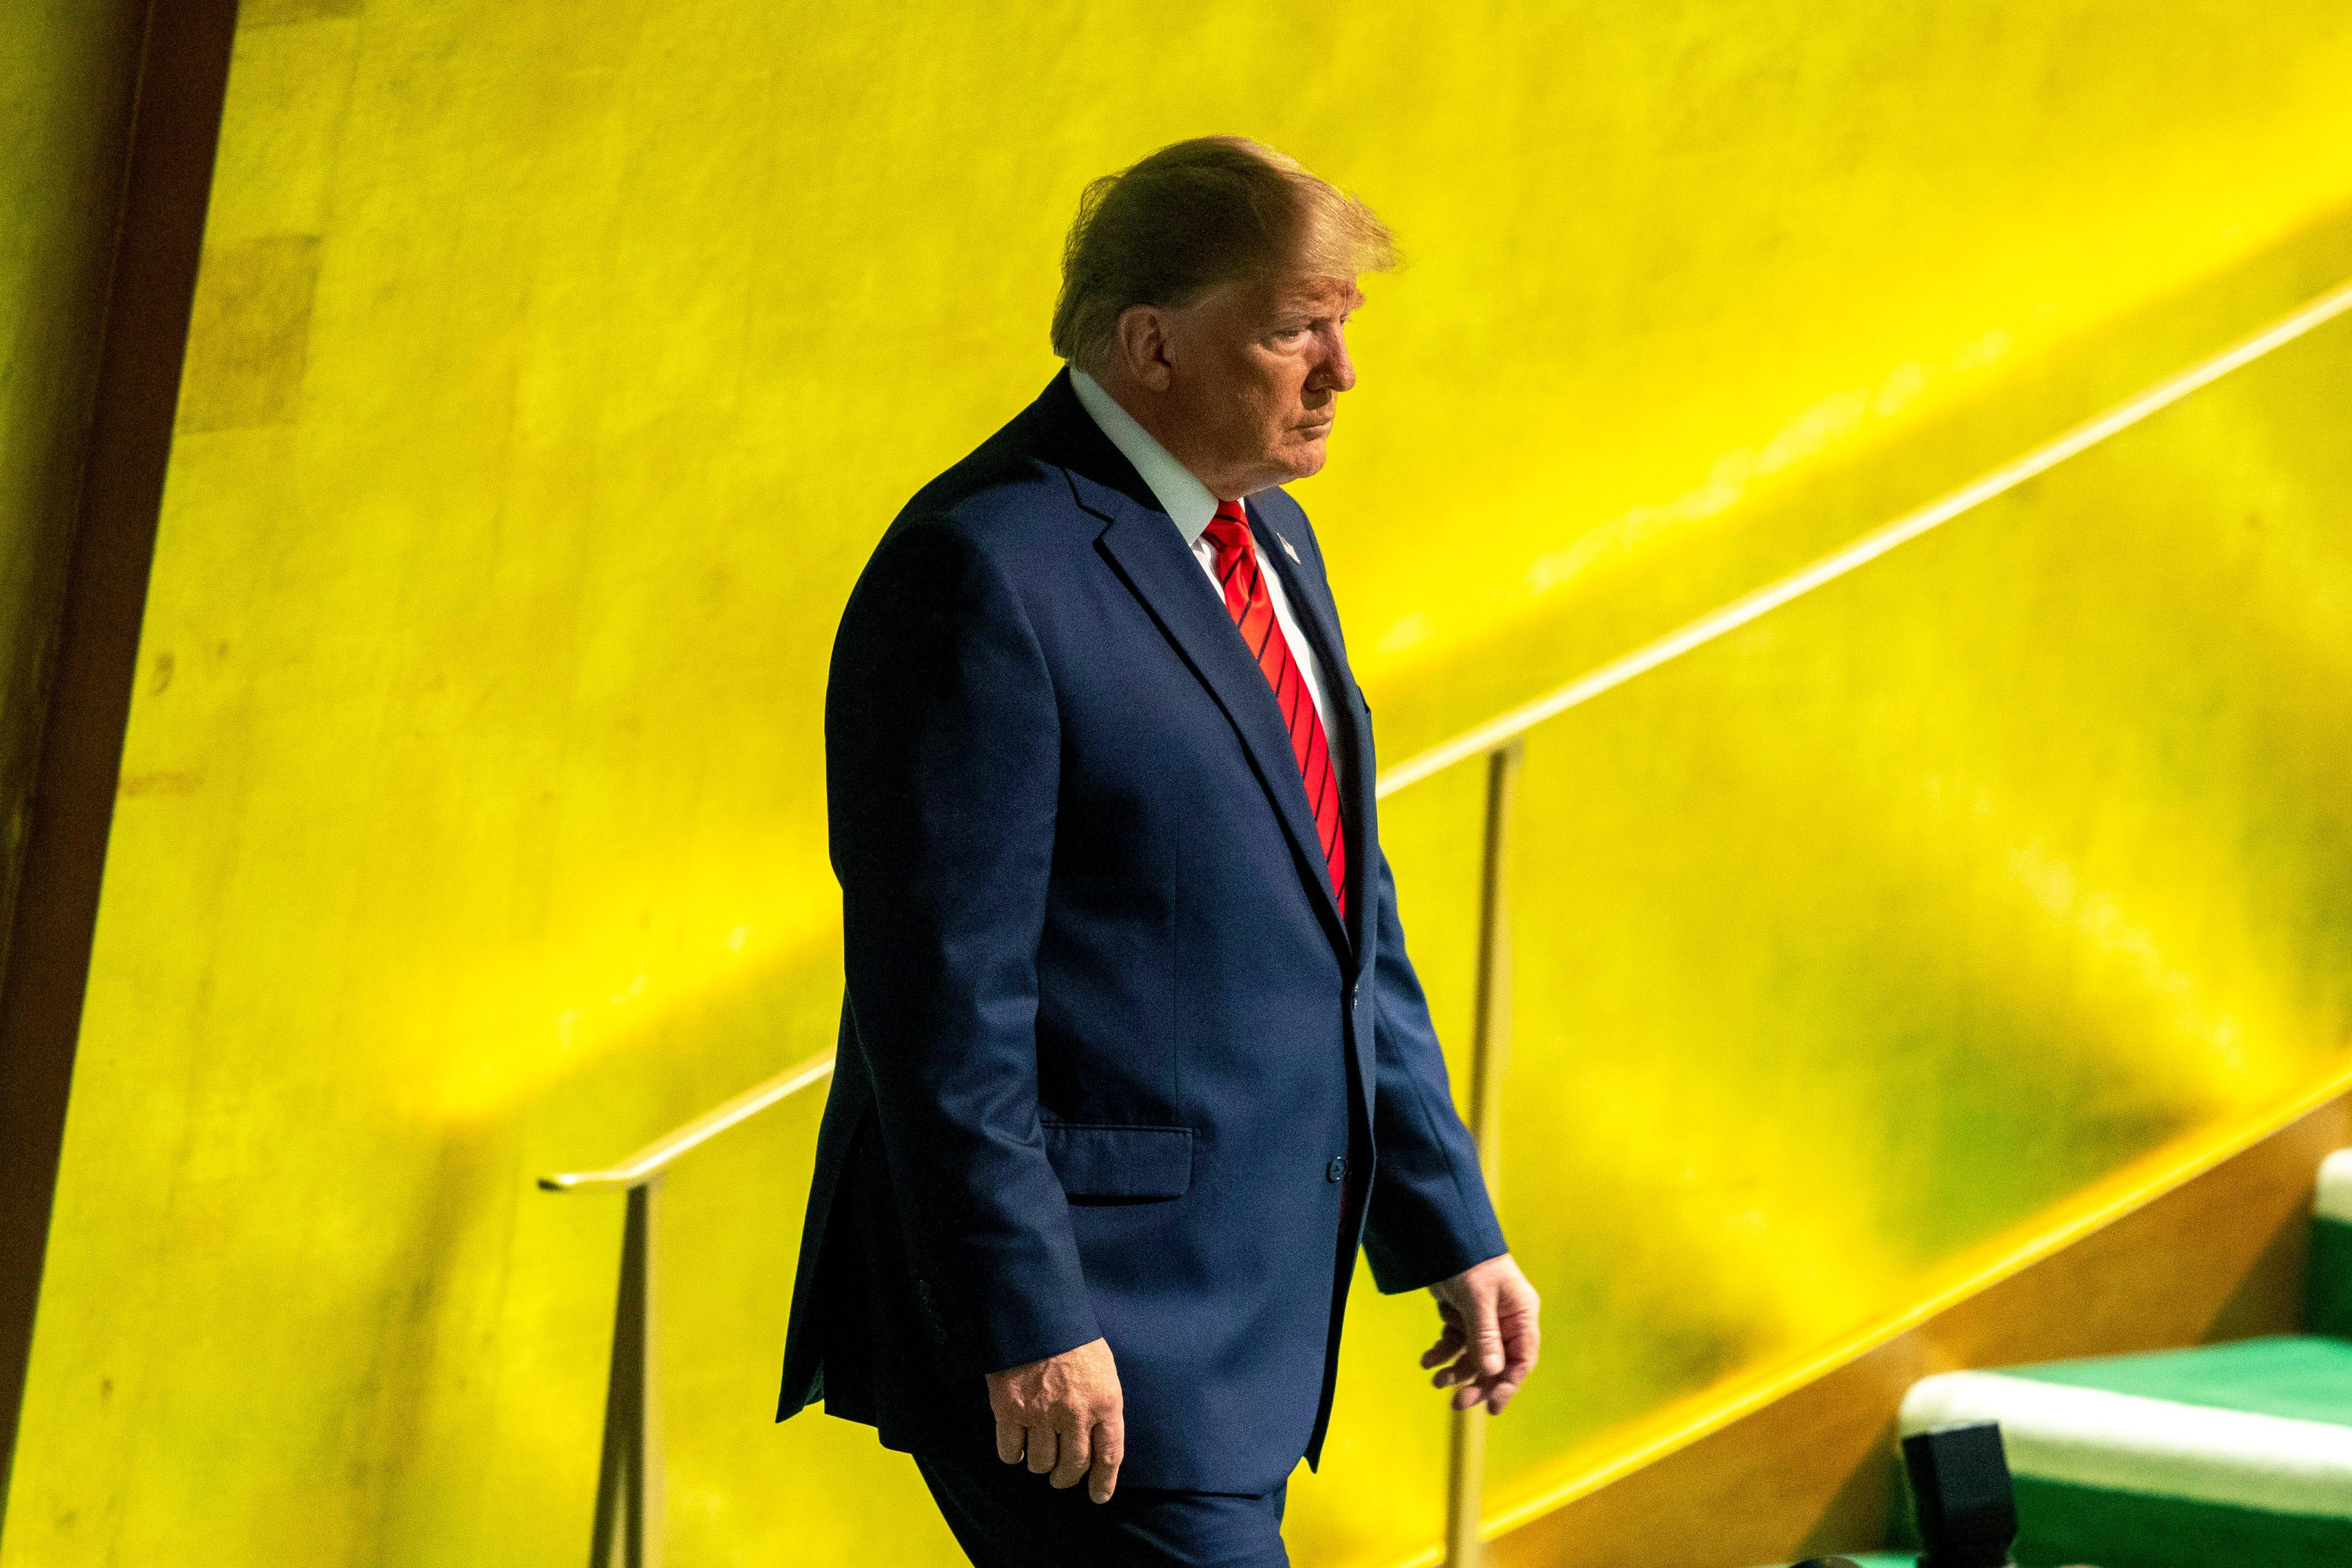 Pay freeze at the U.N.? Trump administration owes the United Nations $1 billion